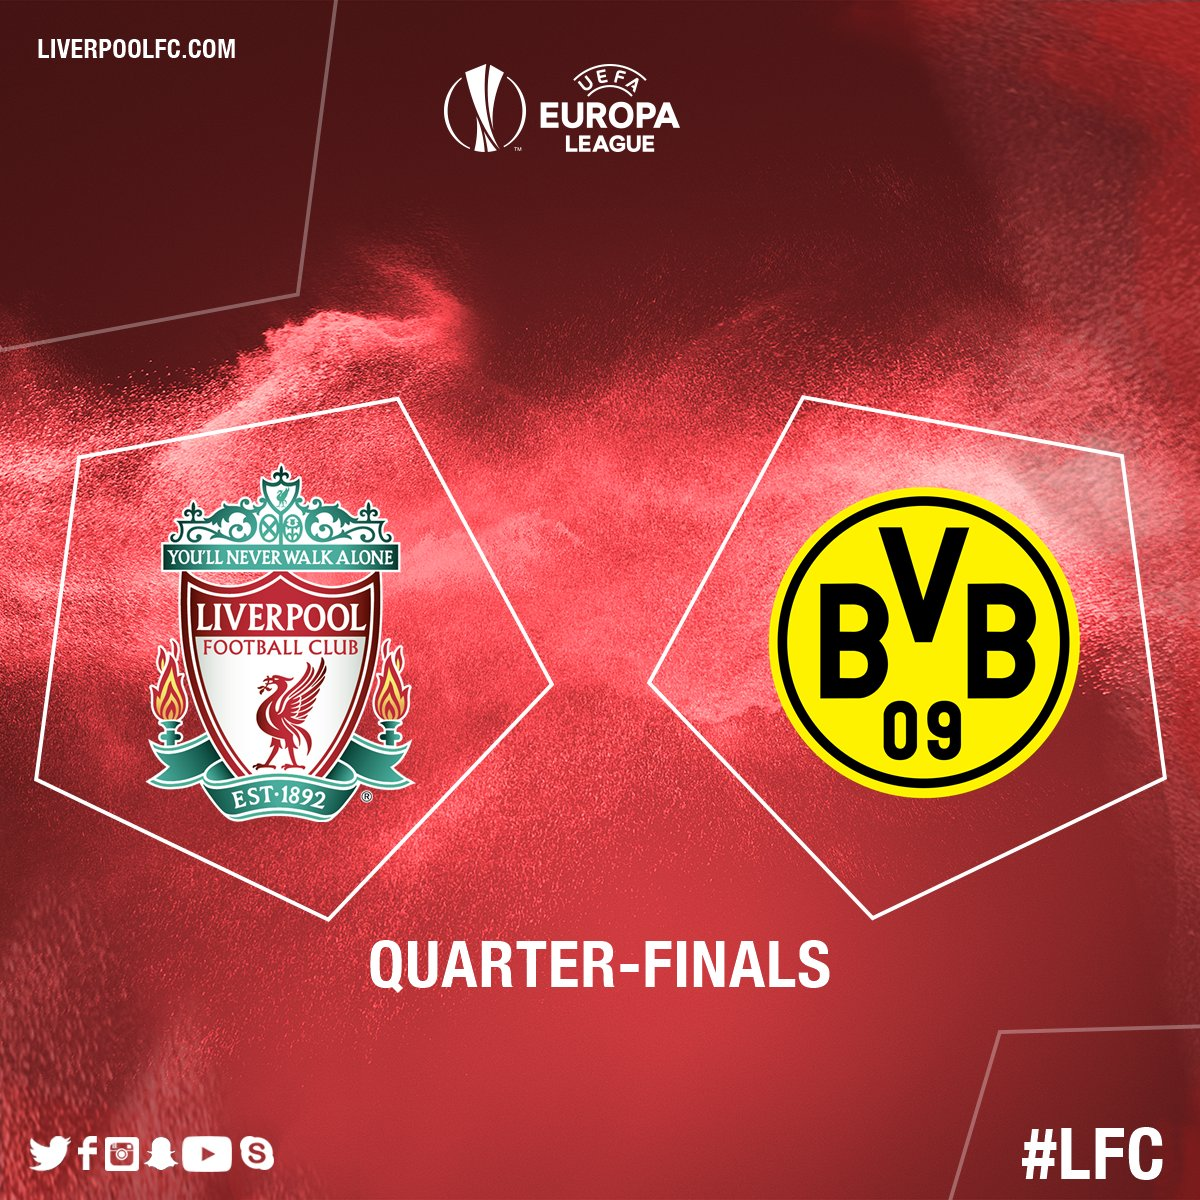 #LFC have been drawn to face @BVB in the quarter-finals of the @EuropaLeague. https://t.co/GpTFiAhZJT